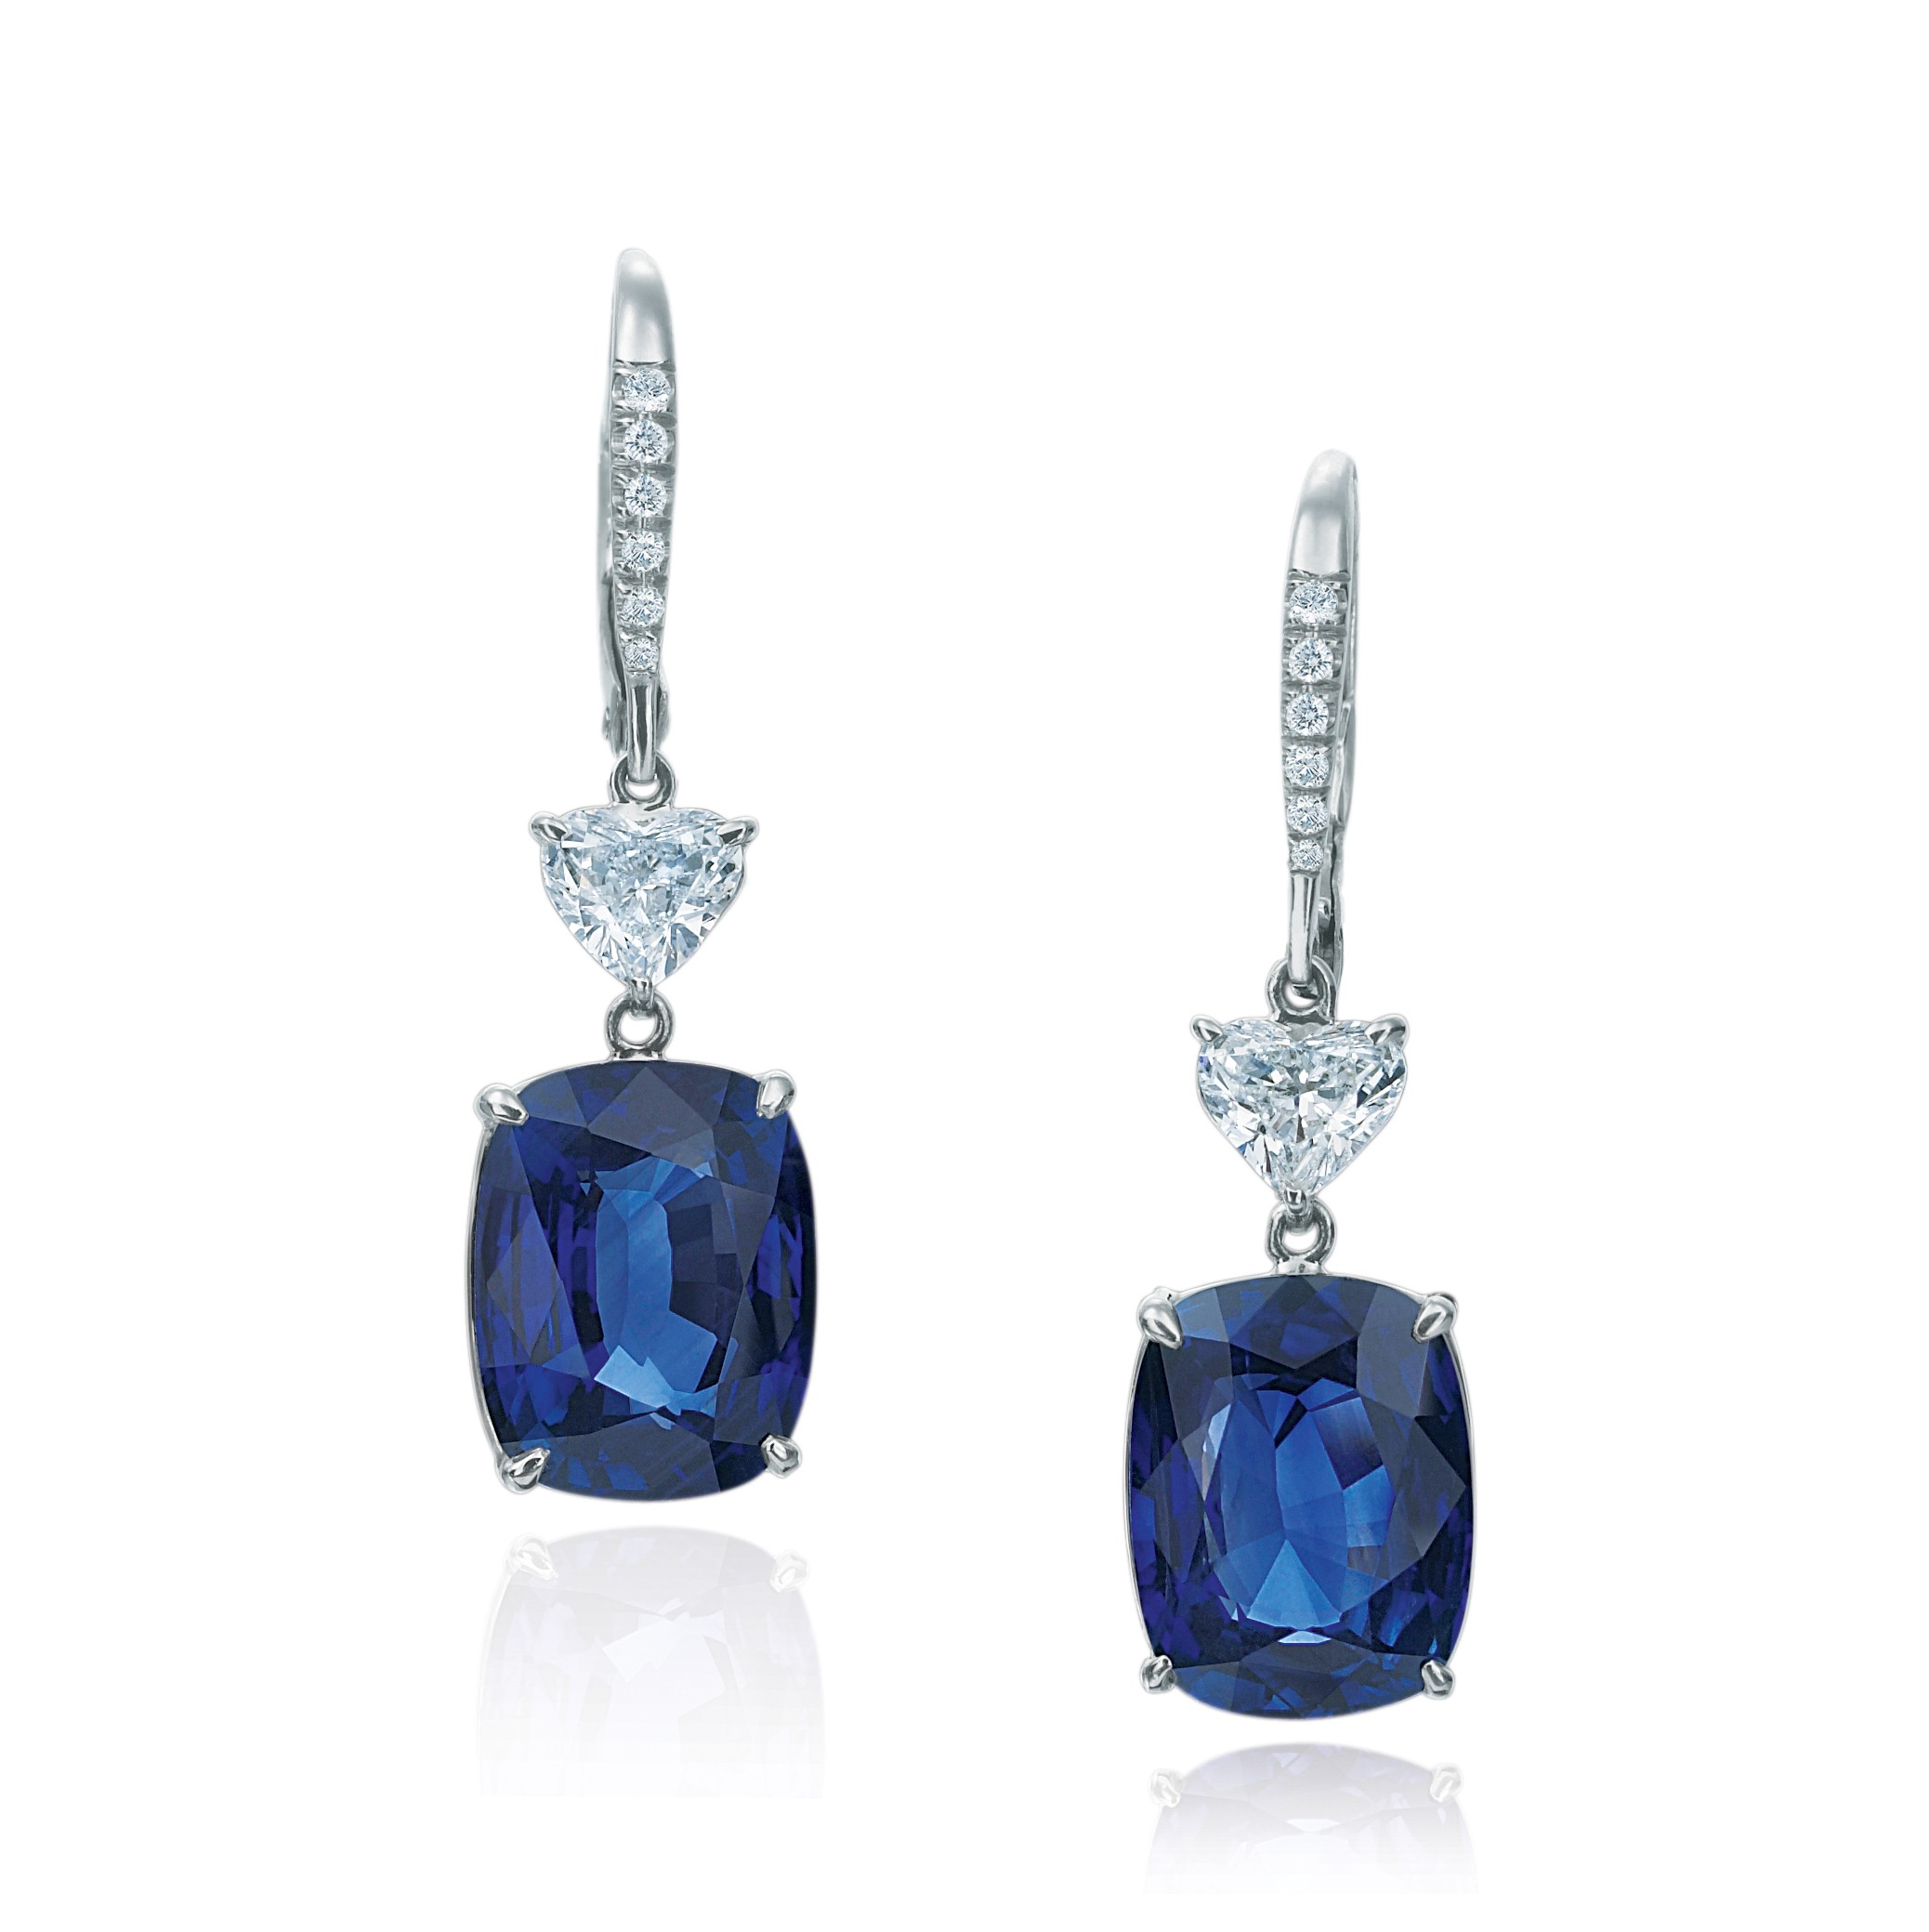 Sapphire and diamond earrings in Palm Desert on El Paseo